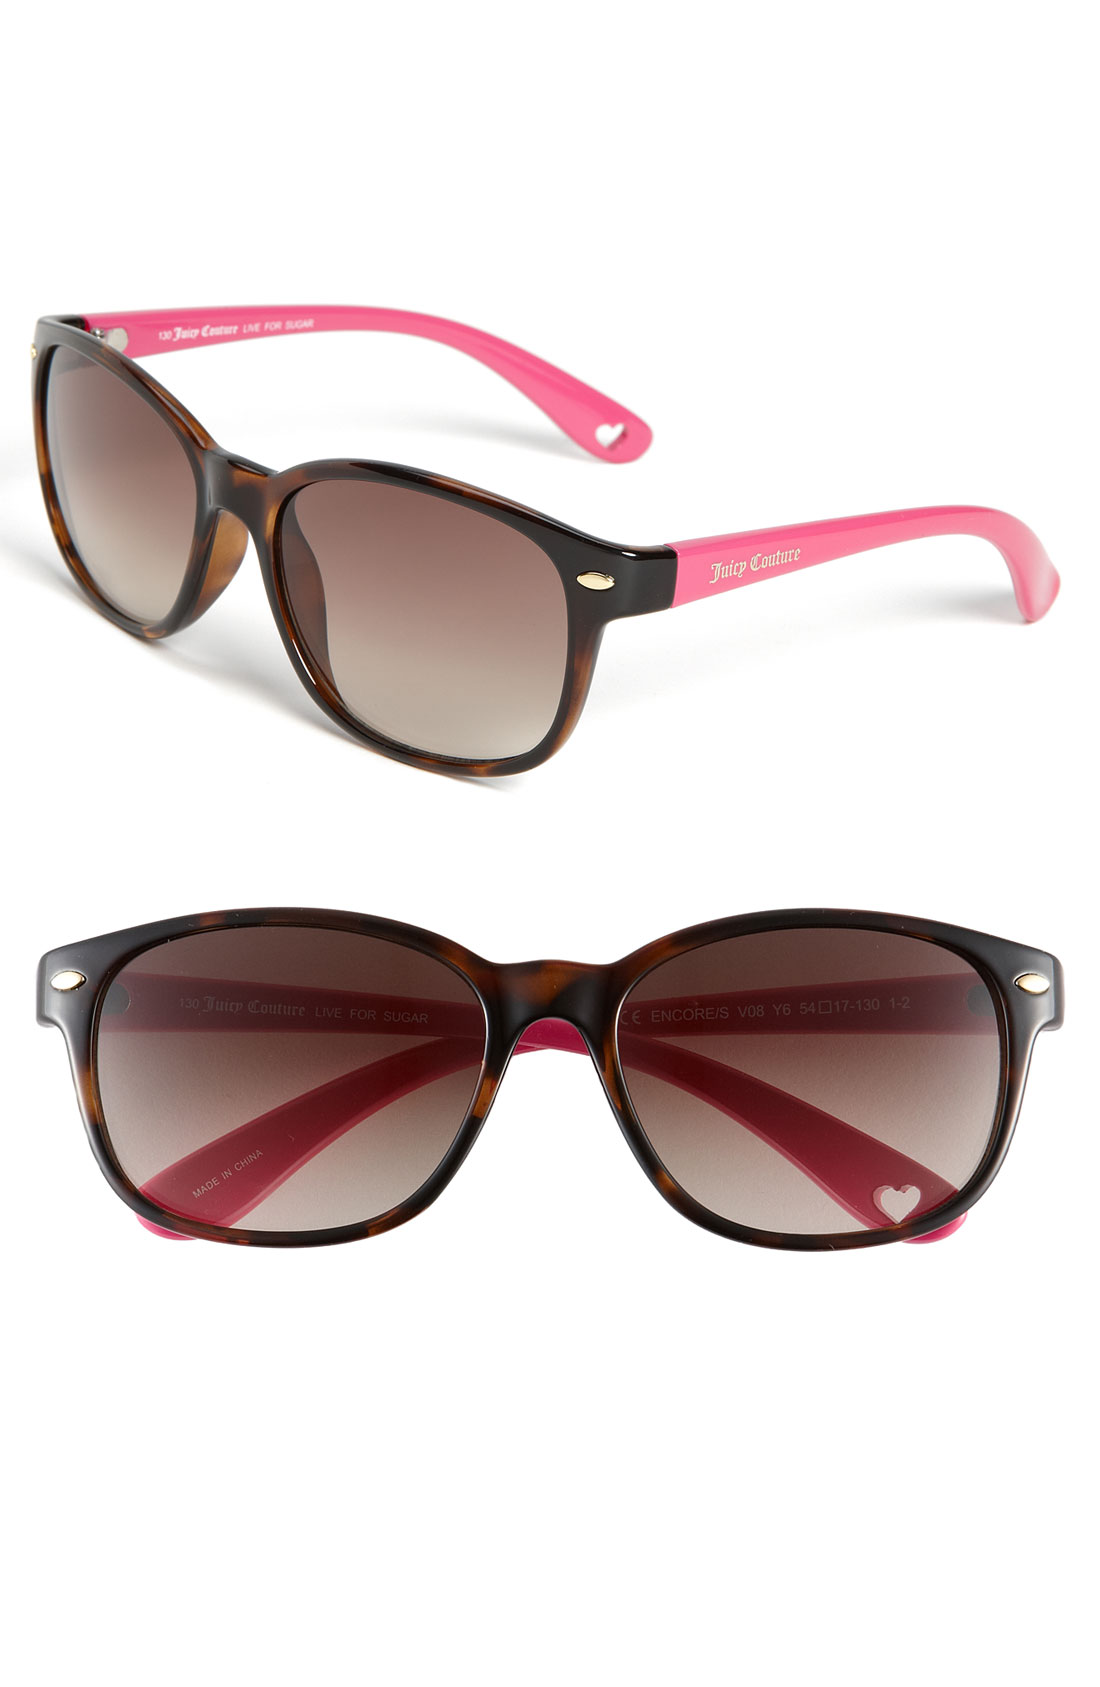 Juicy Couture 'Encore' Sunglasses in Pink (tortoise/ pink ...